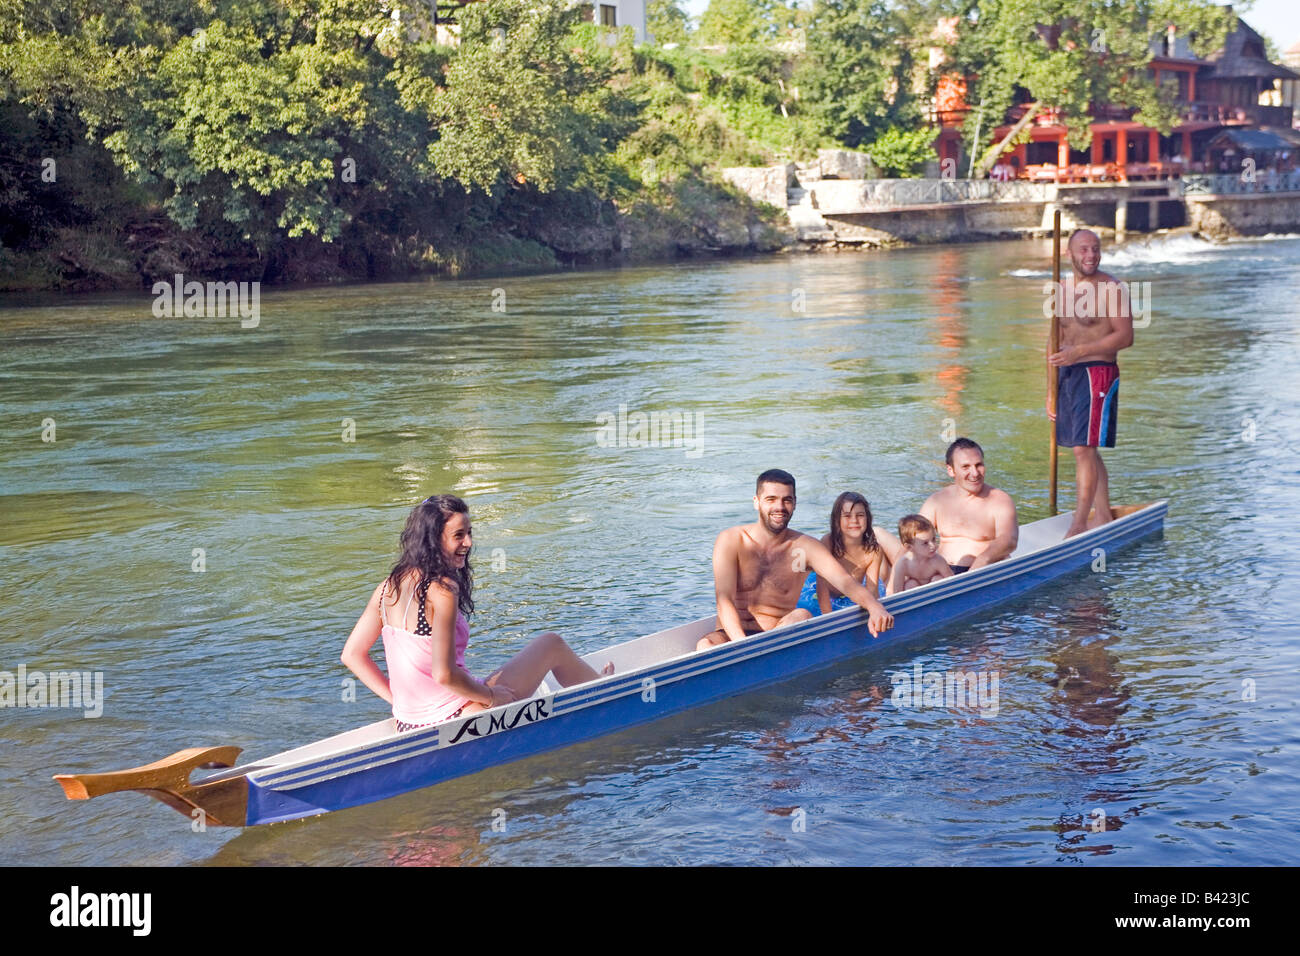 Family with friends in a 'Dajak boat' punt boat the gondola of Banja Luka town, Bosnia, Republic of Srpska - Stock Image